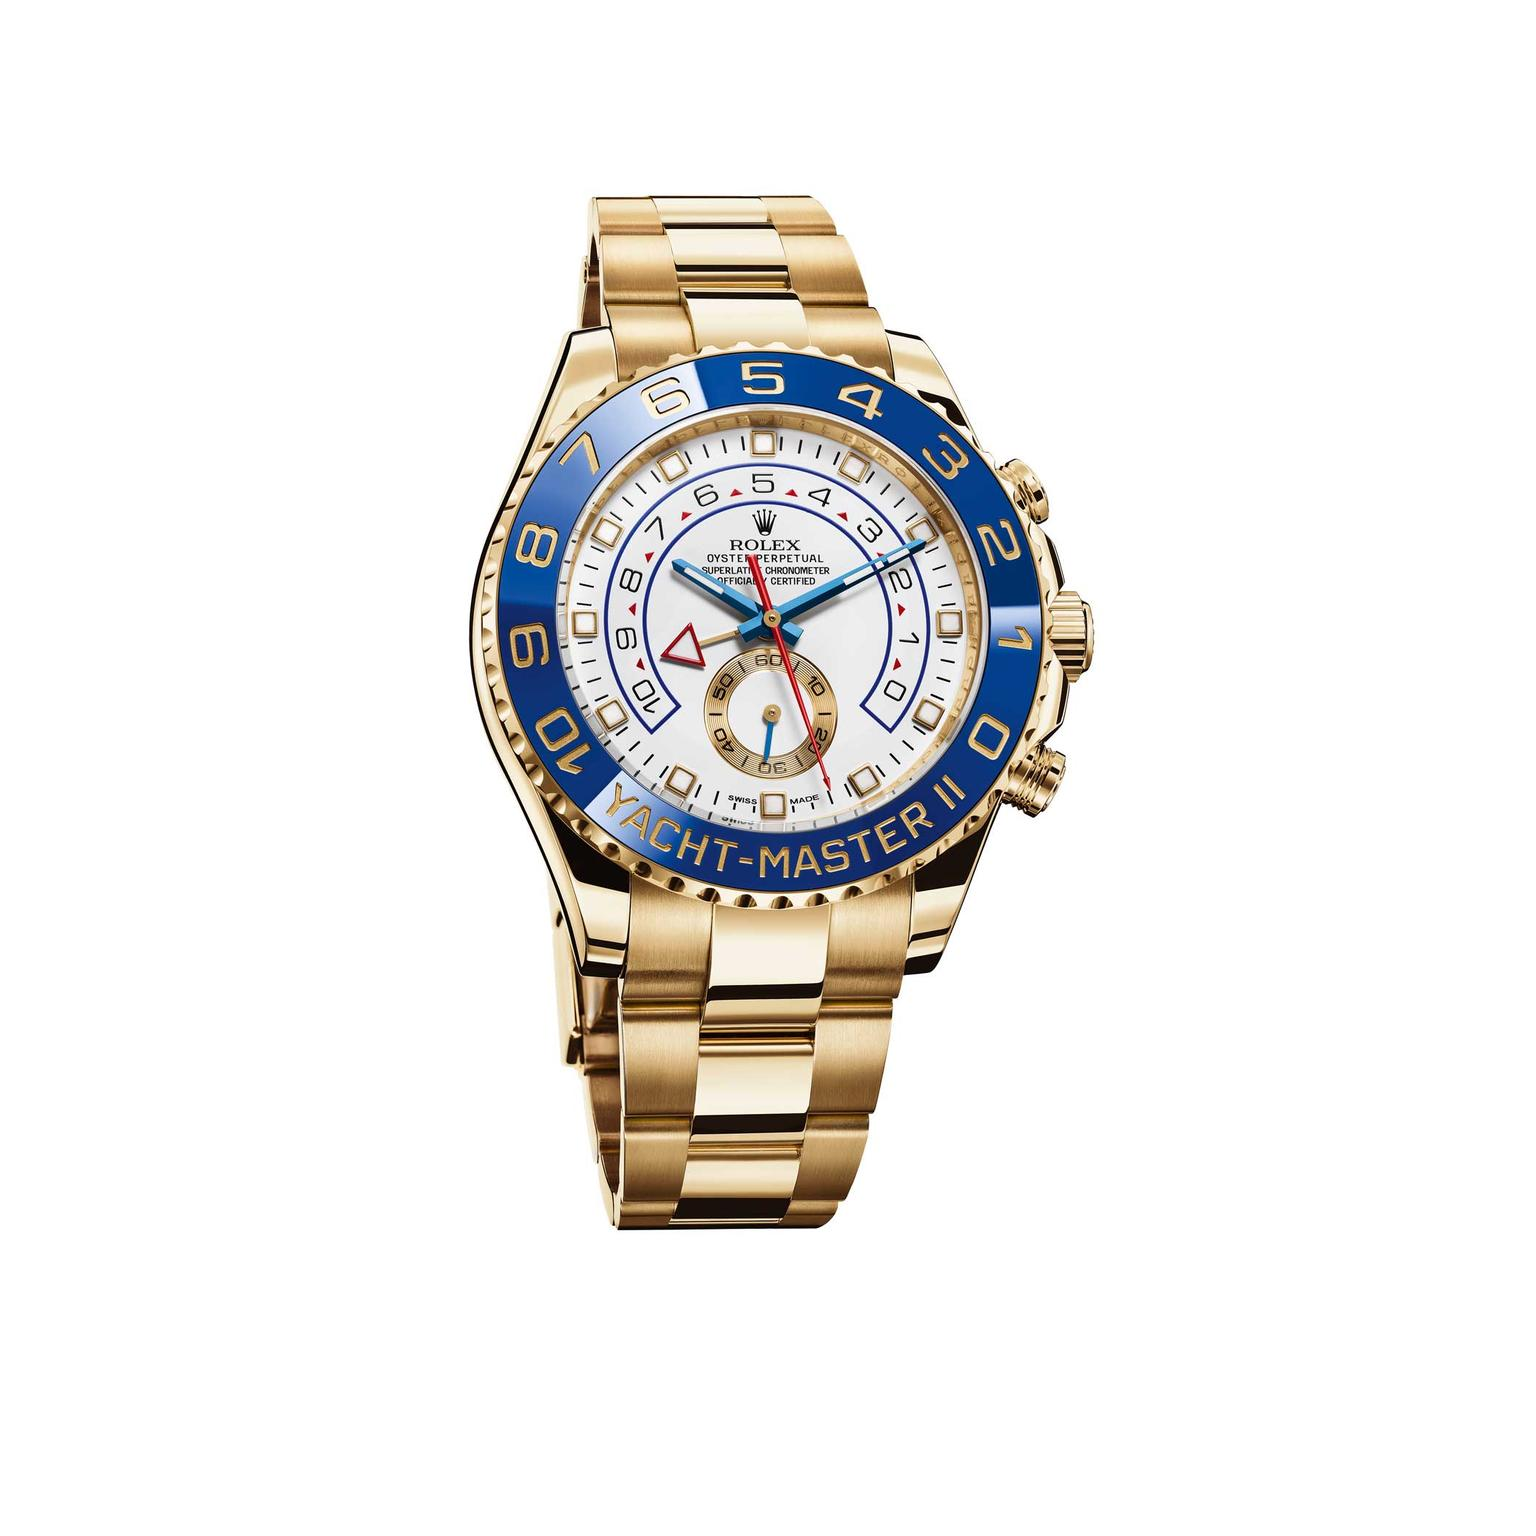 Rolex Yacht-Master II yellow gold